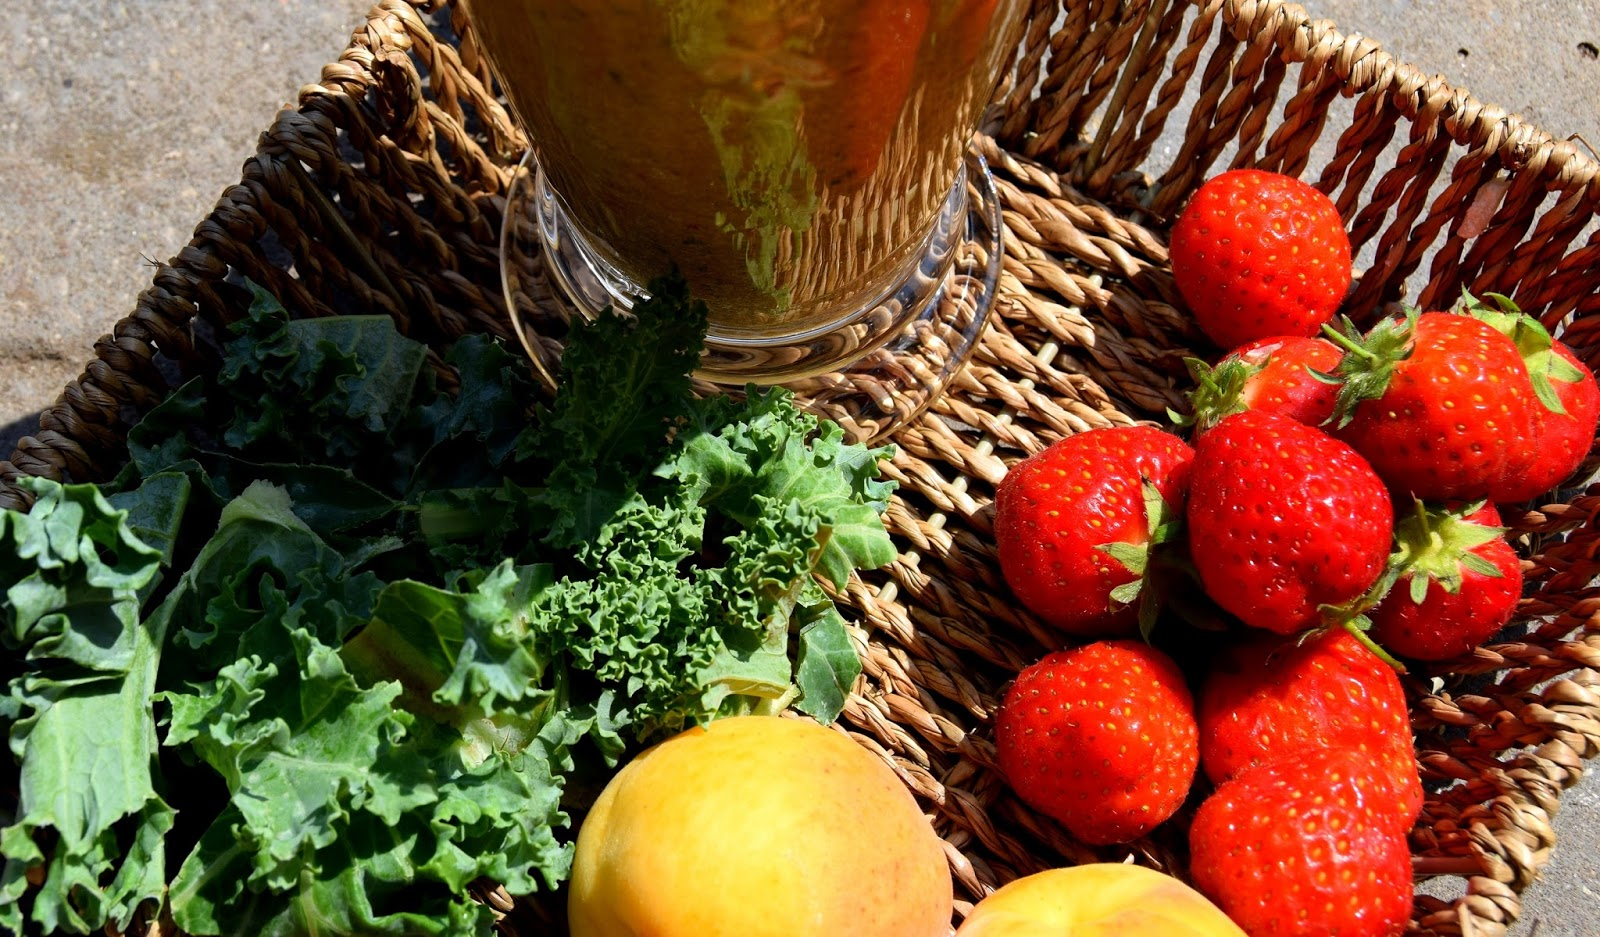 Apricot, Strawberries And Kale Smoothie